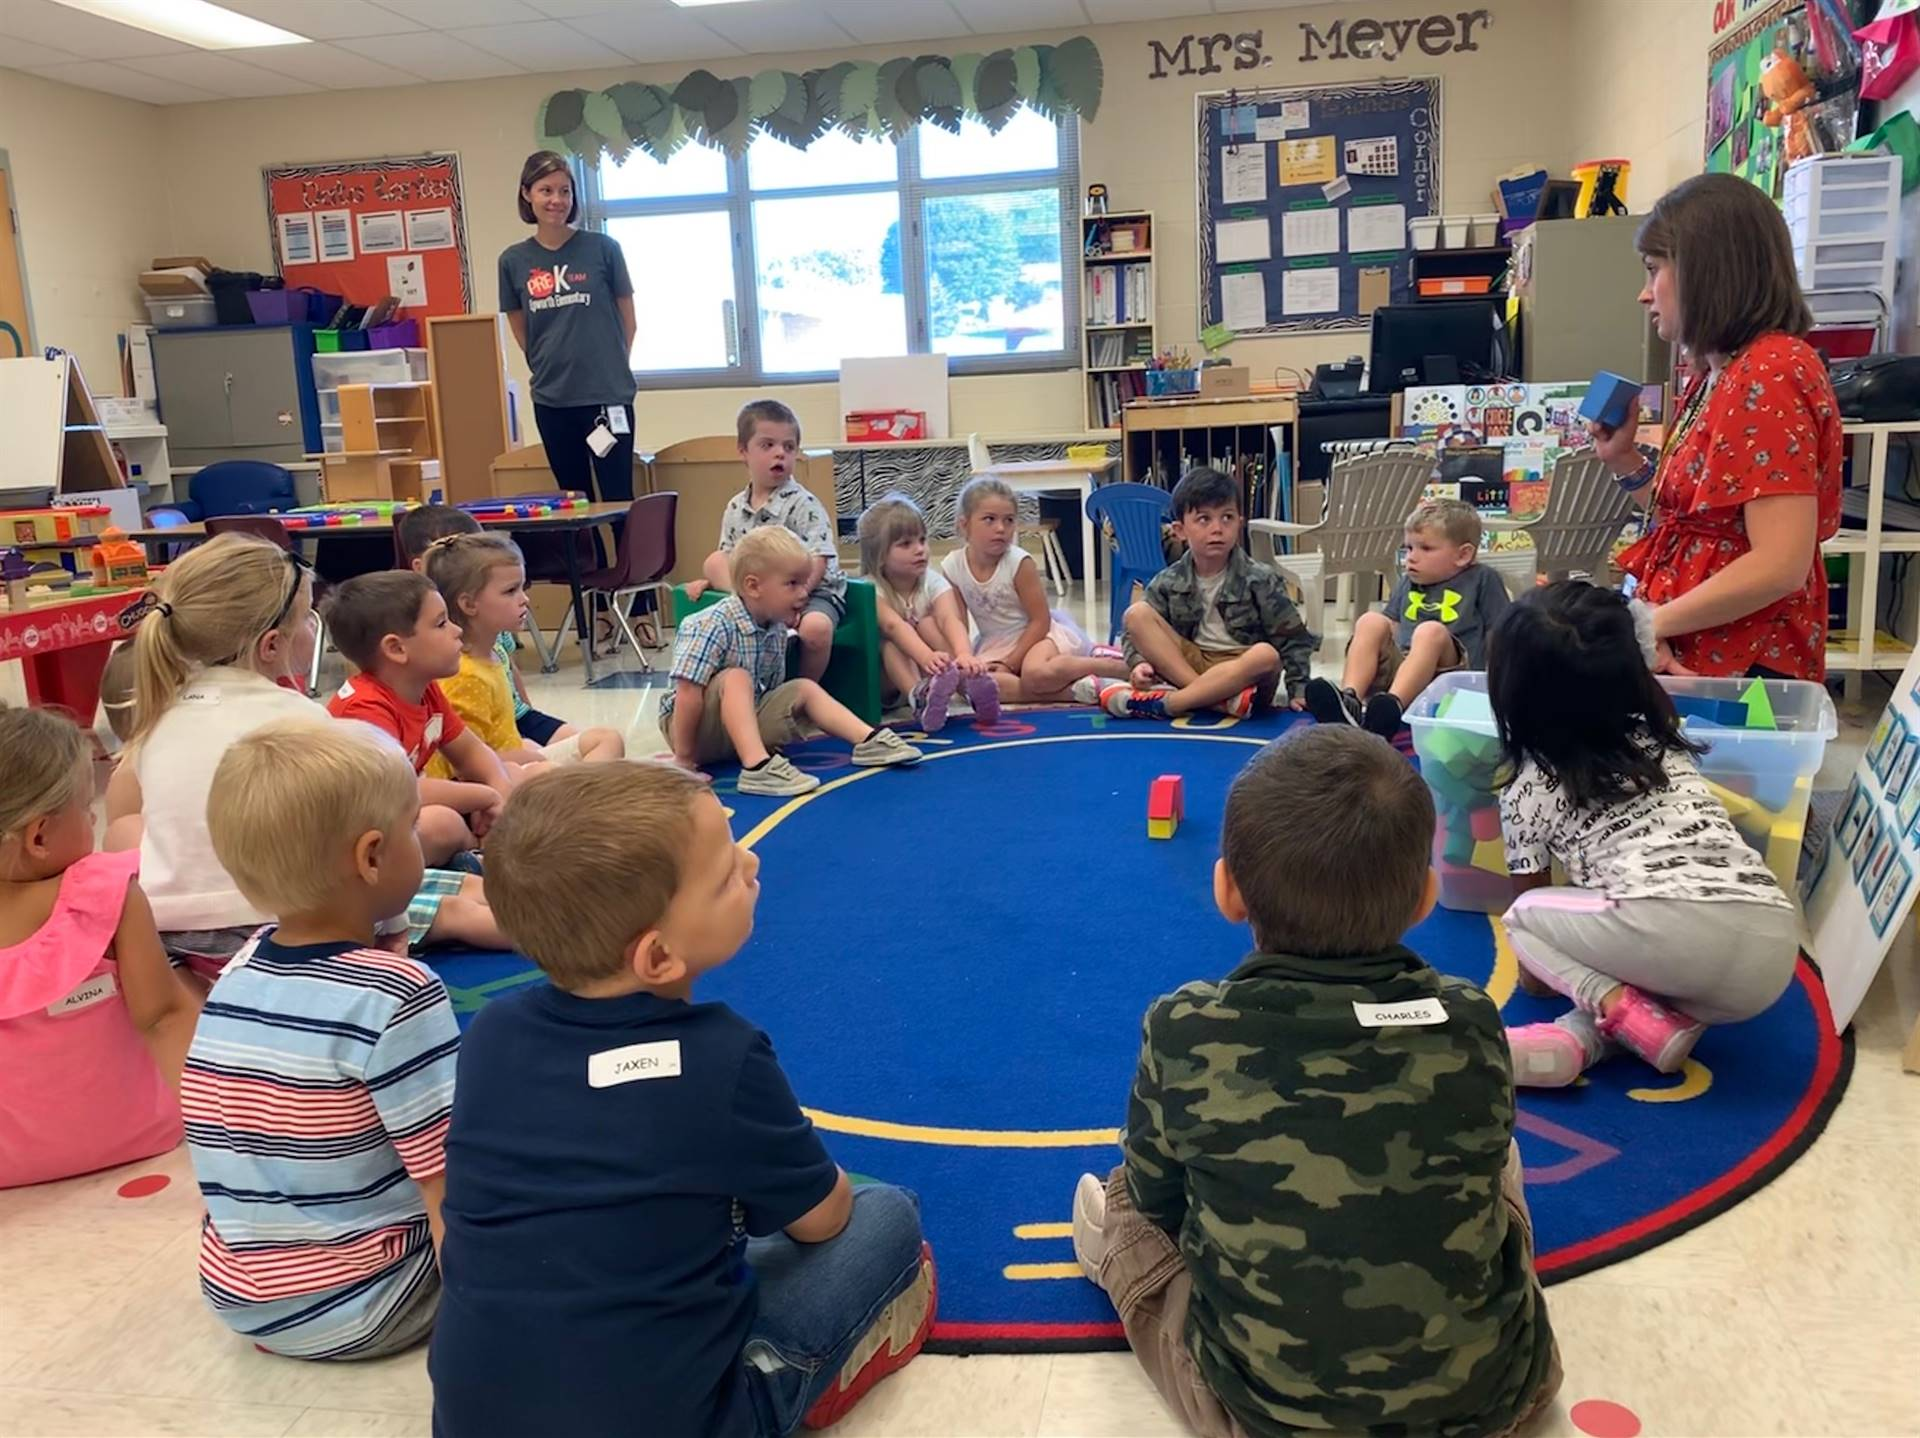 Mrs. Meyer leading her preschool students